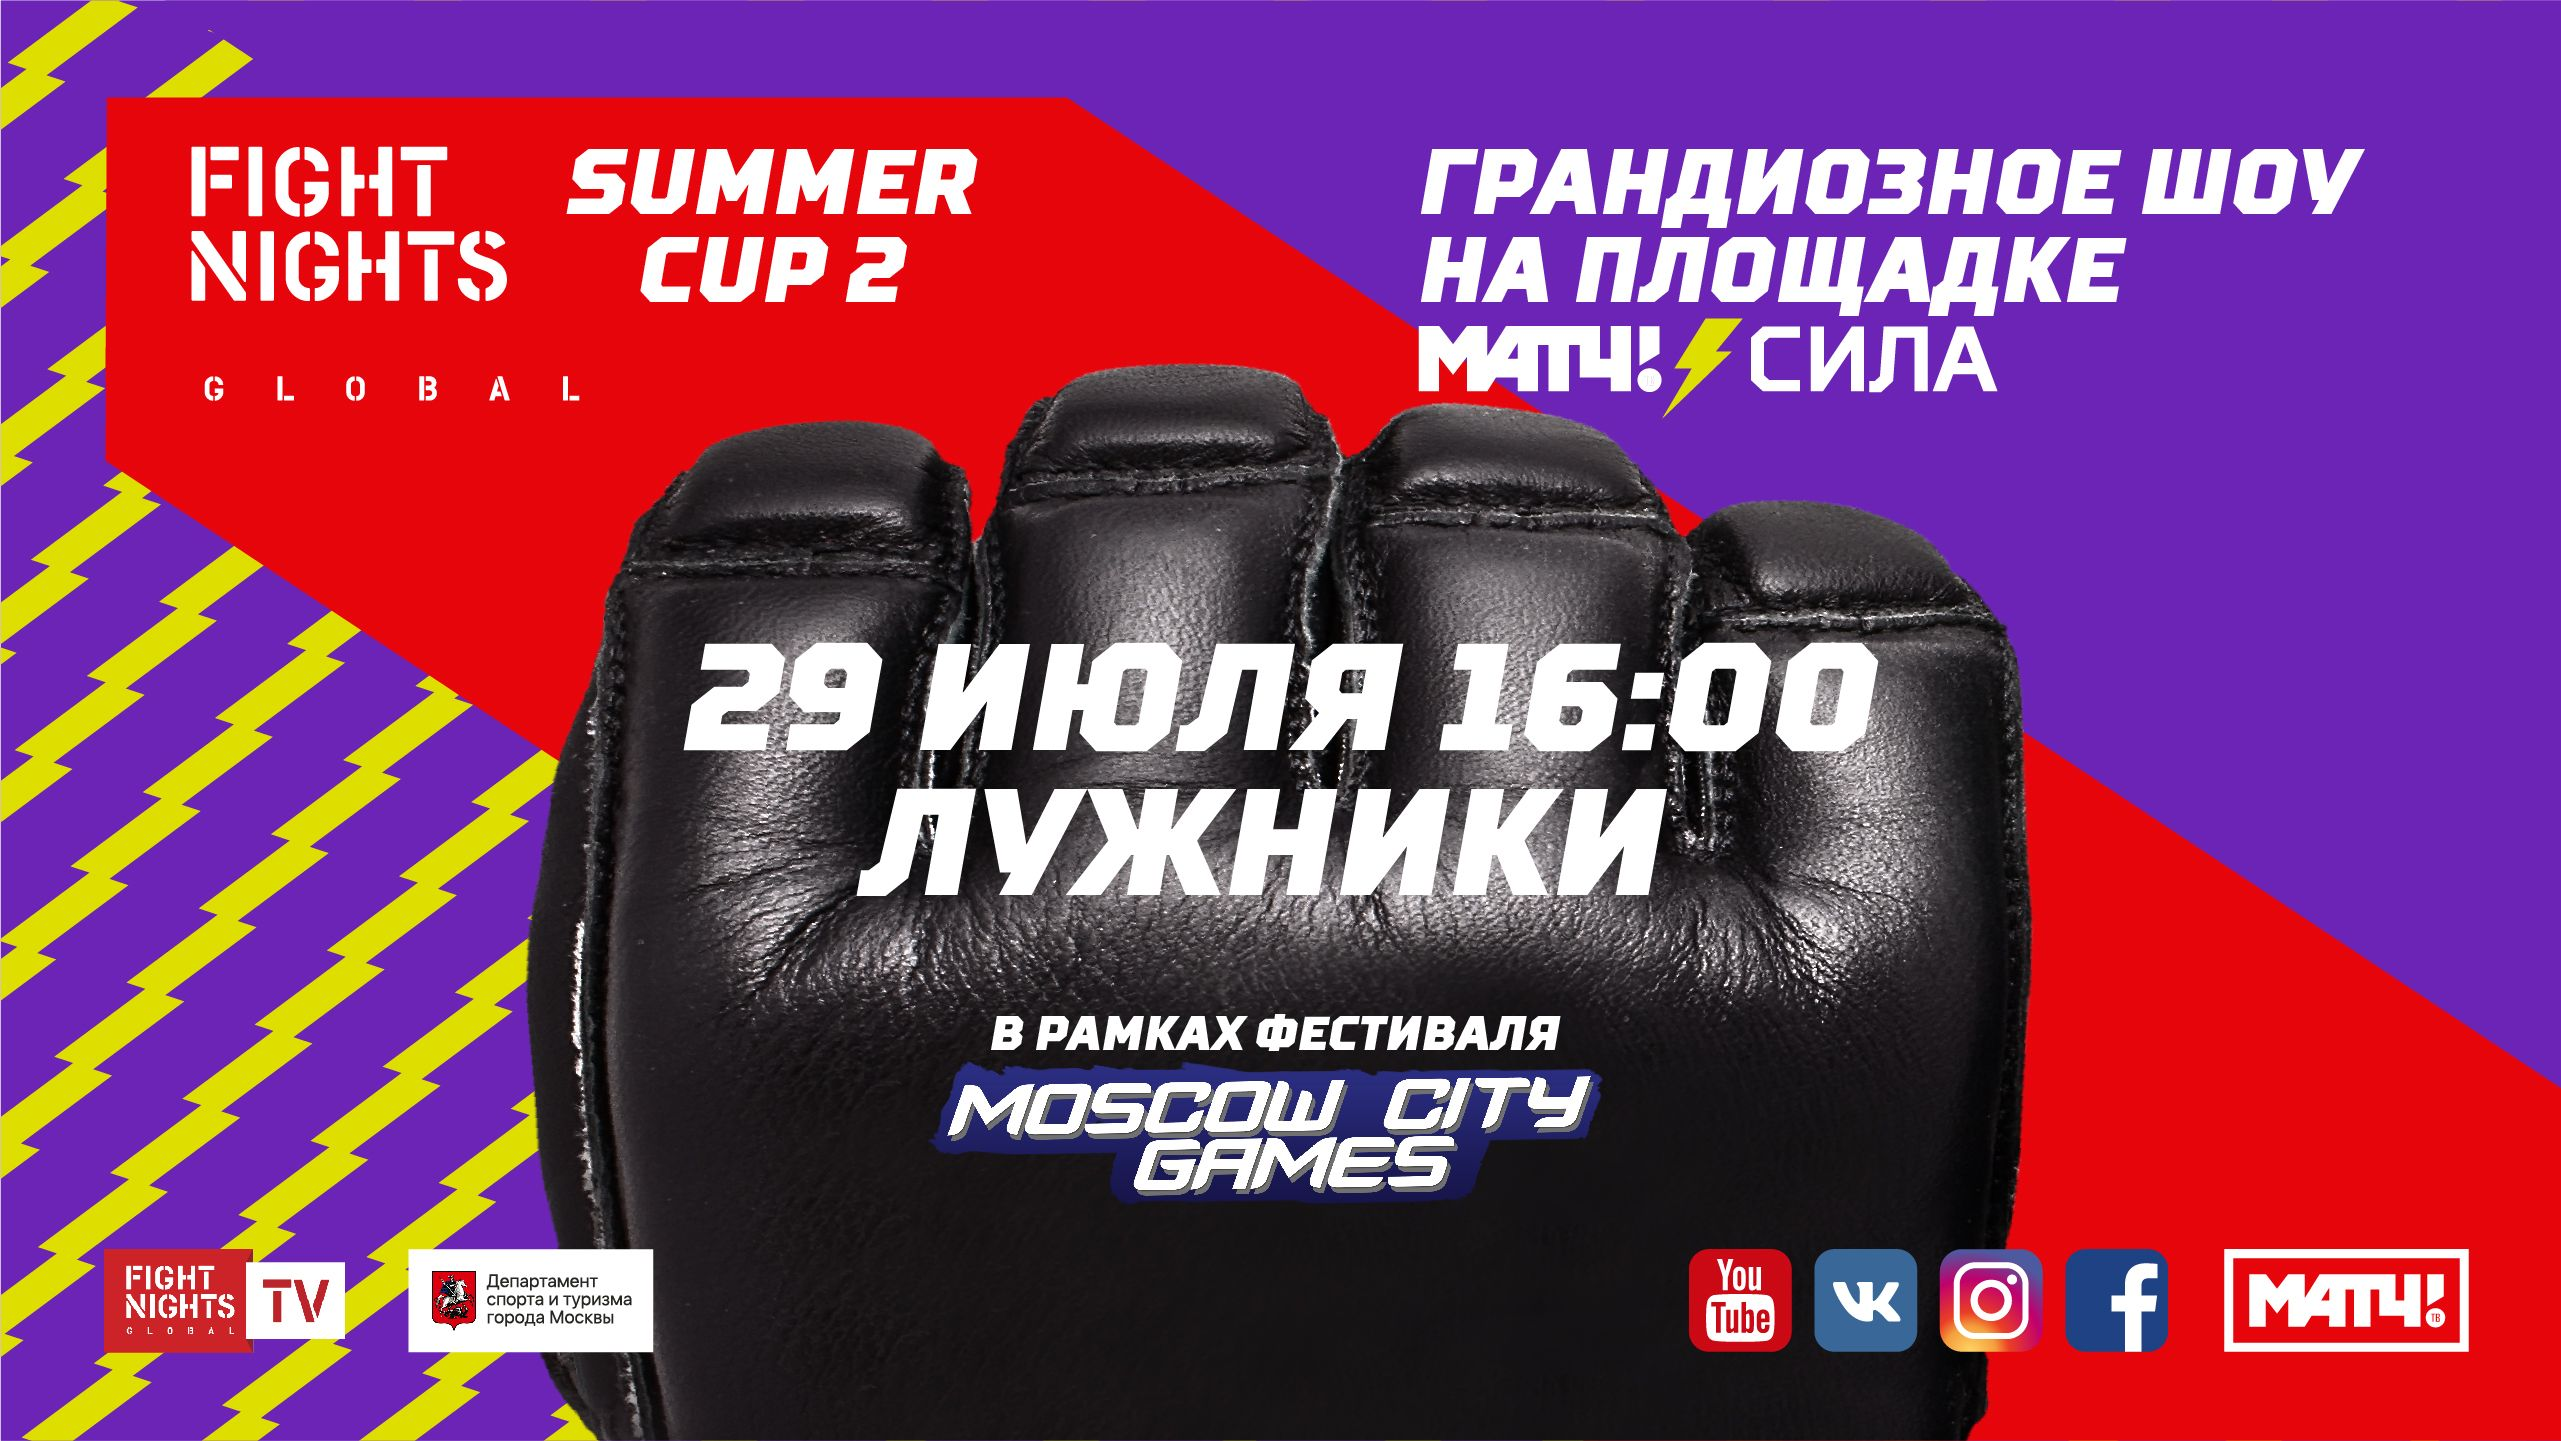 FIGHT NIGHTS GLOBAL SUMMER CUP 2017